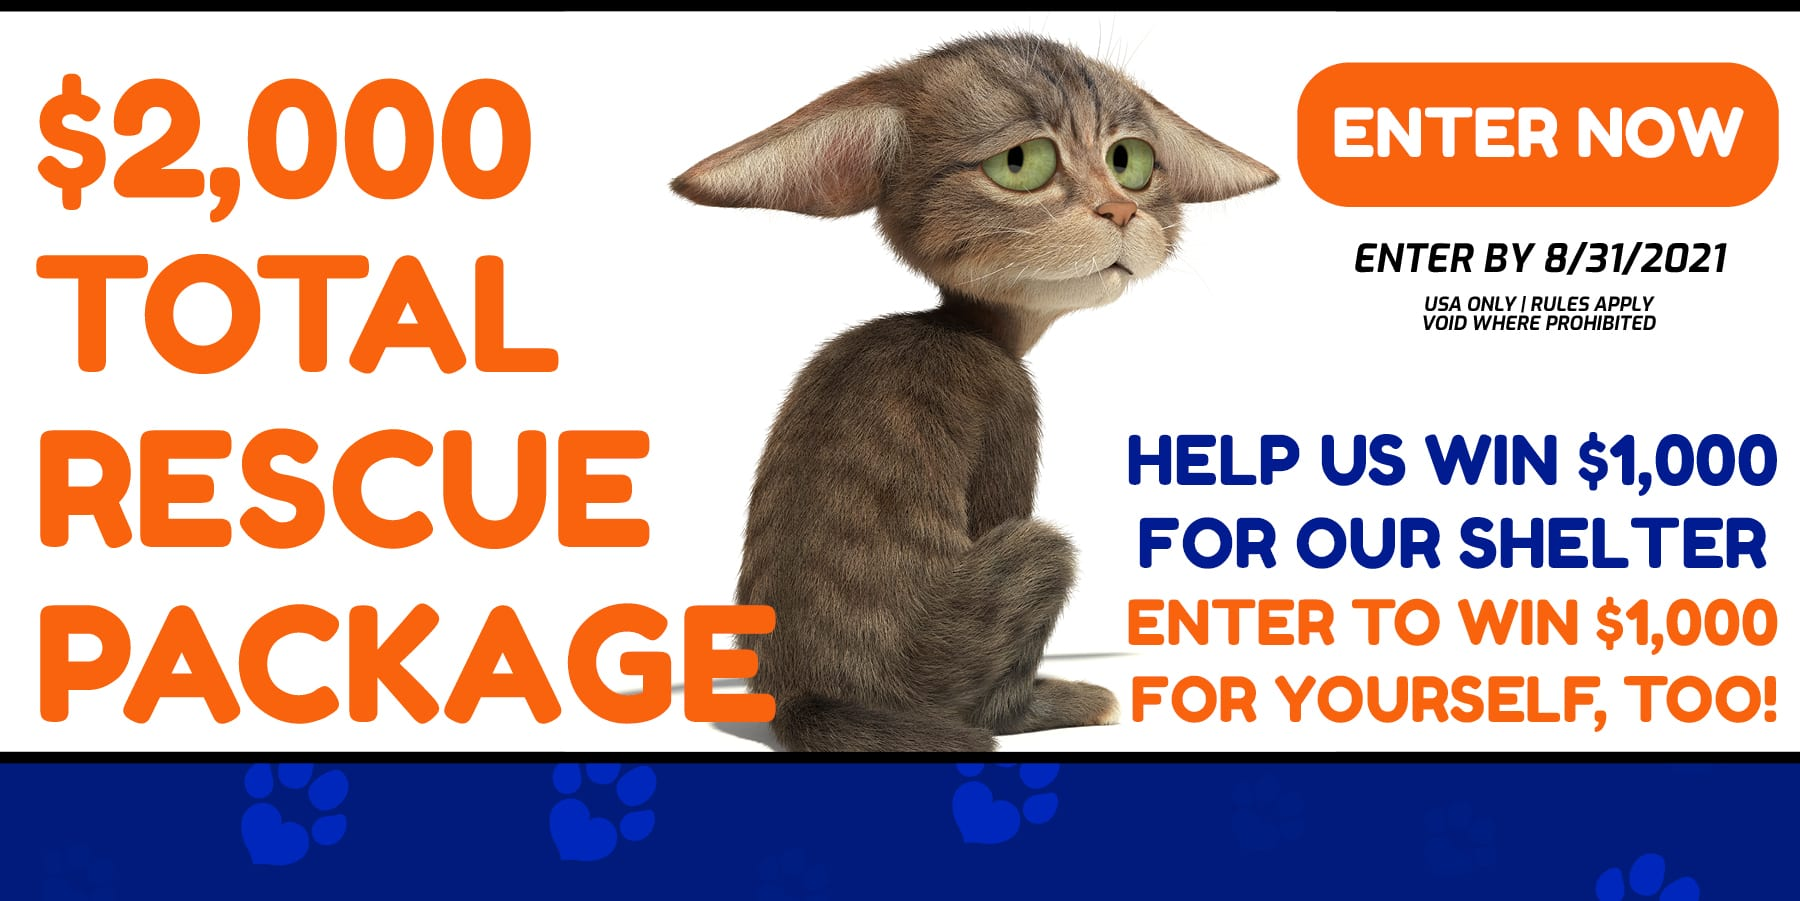 adopt a pet cat kitten rescue package